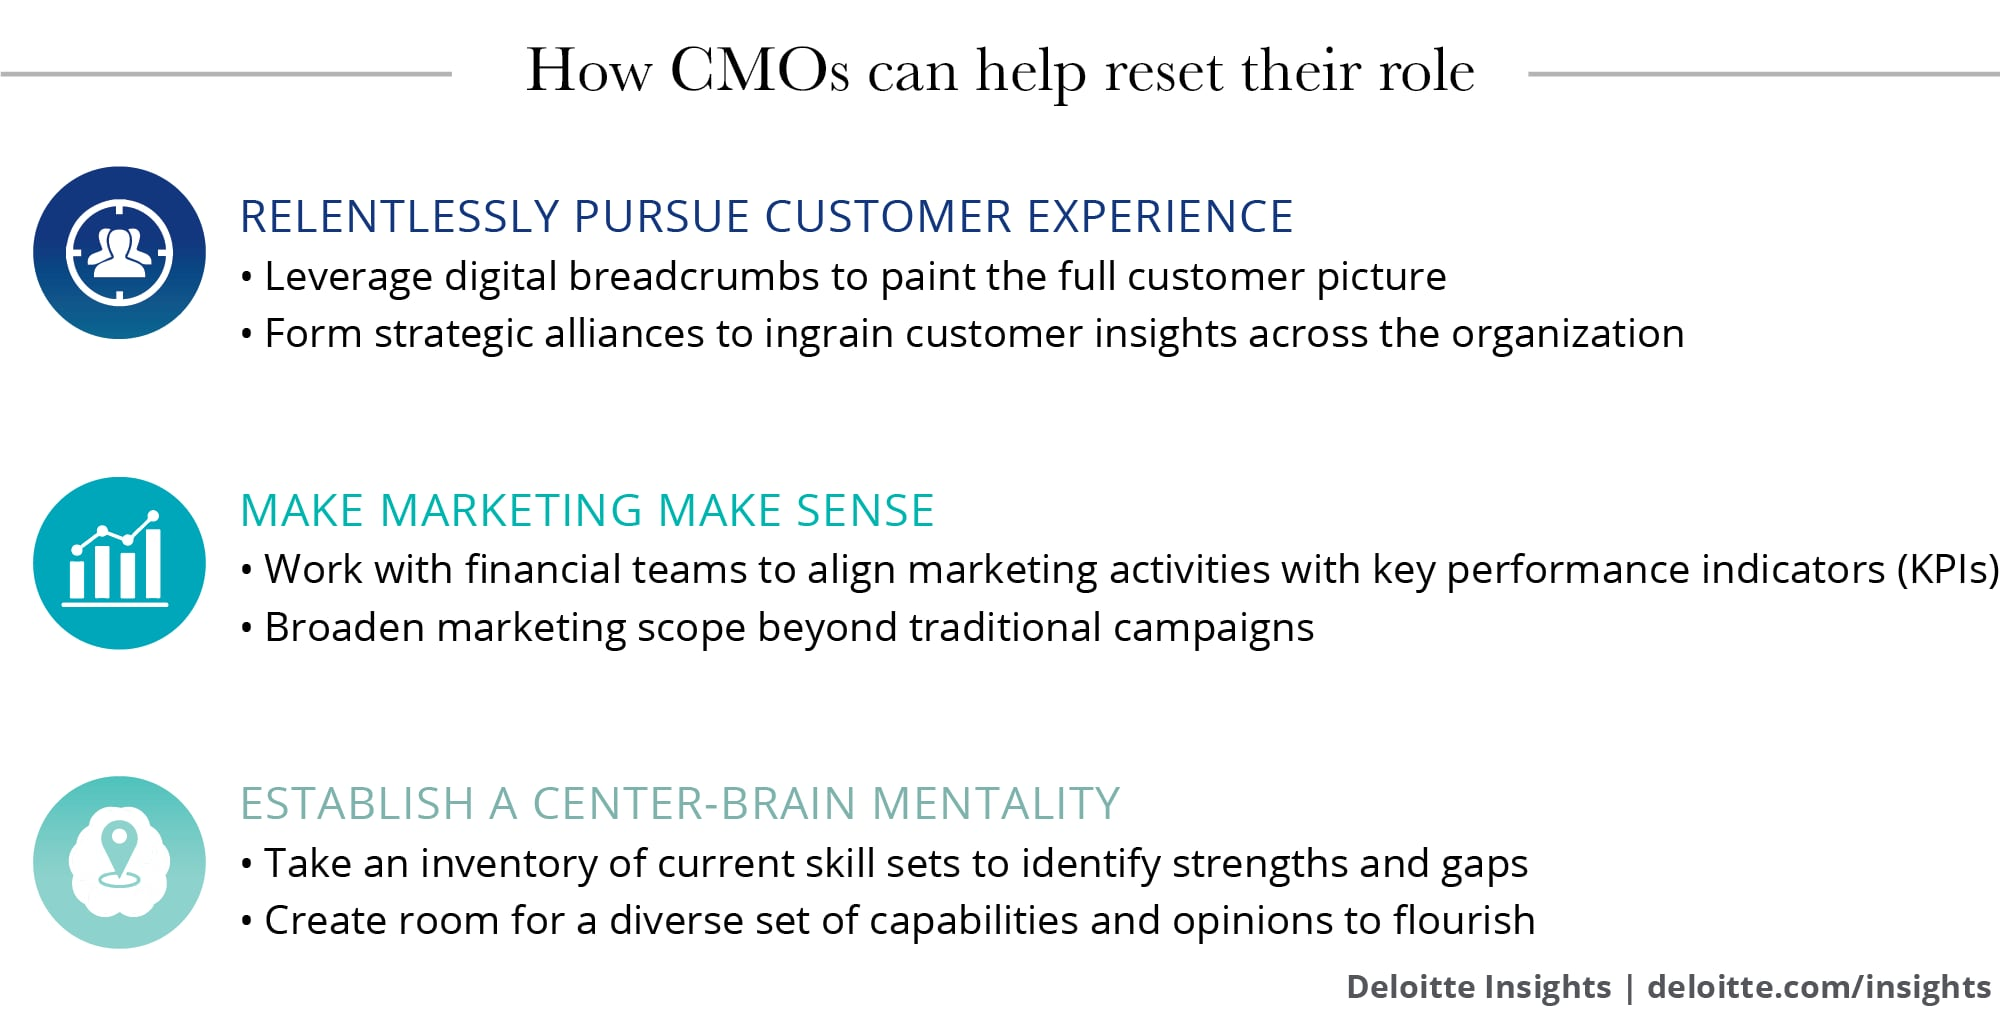 How CMOs can help reset their role